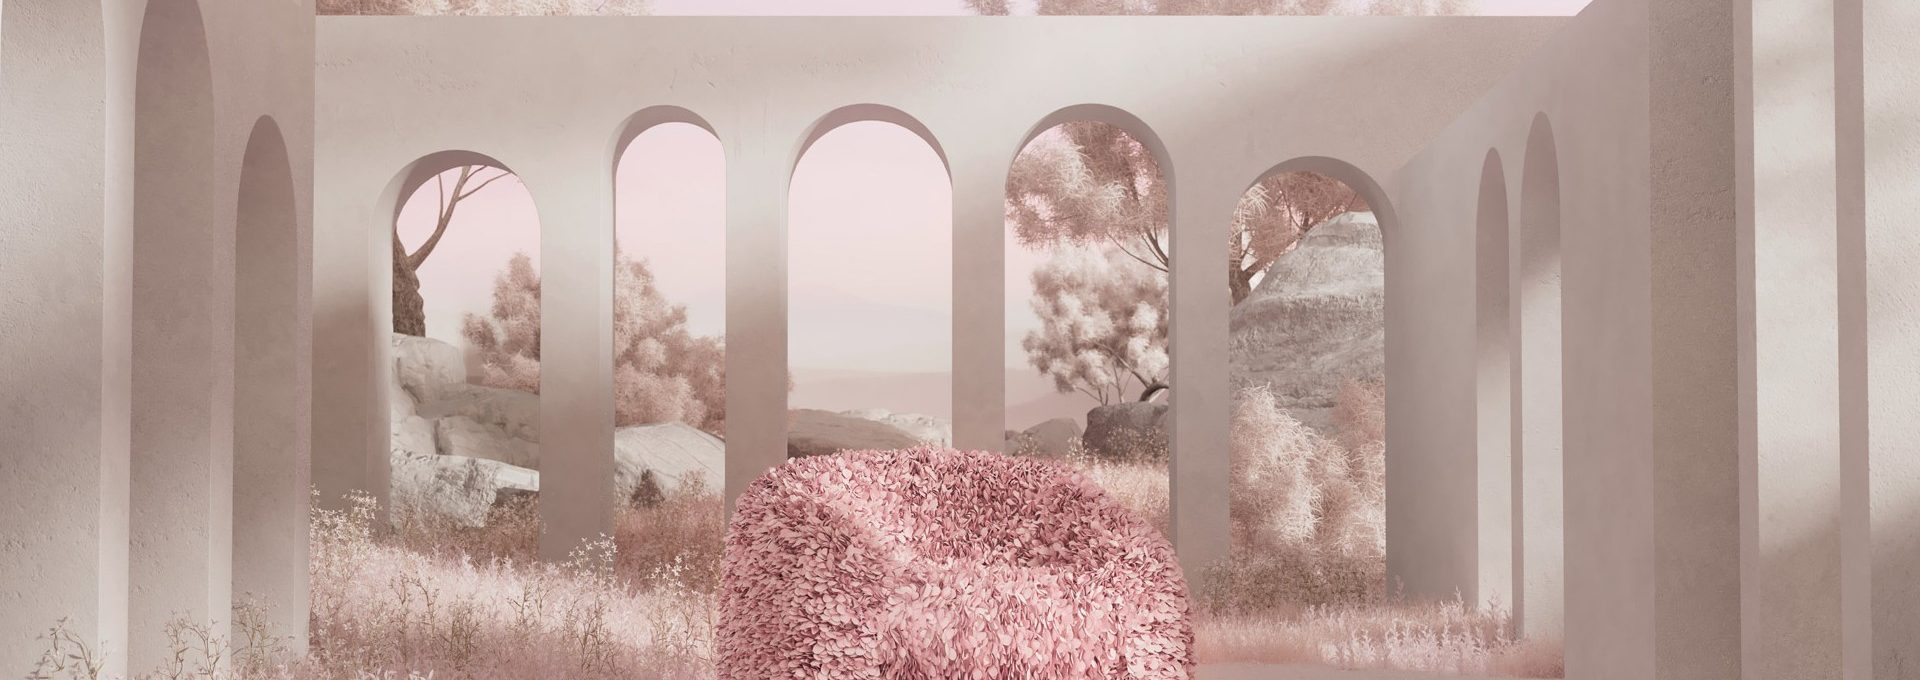 Moooi Releases Impossible To Produce The Chair with 30 000 Fabric Petals_Cover